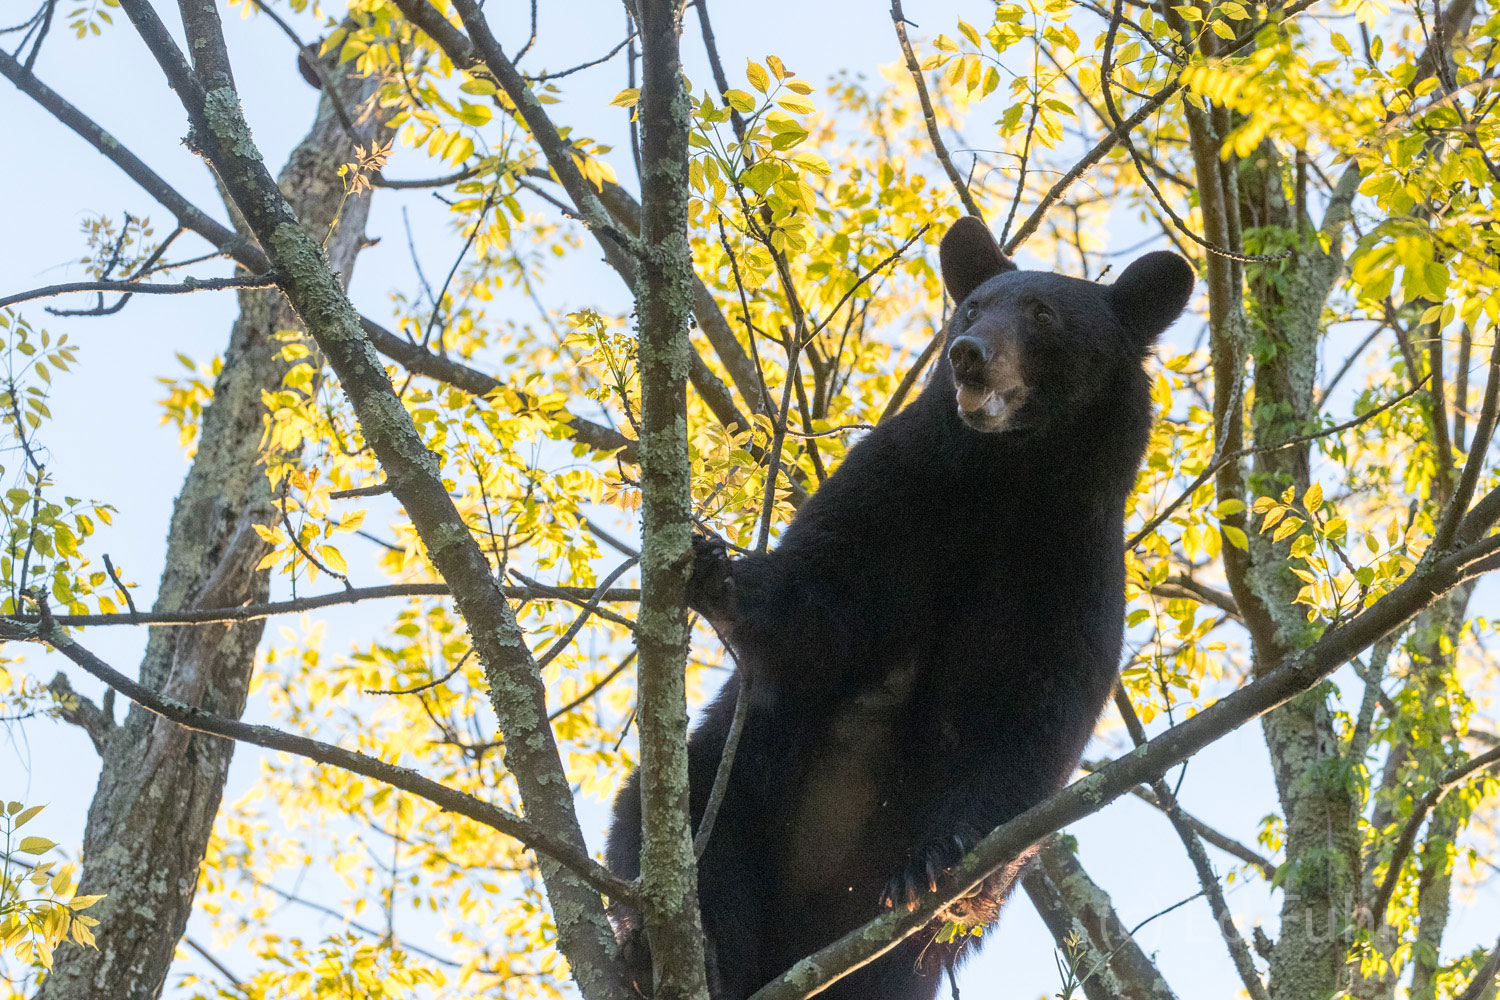 Through a moon roof I manage a quick photo and pray this bear does not fall!